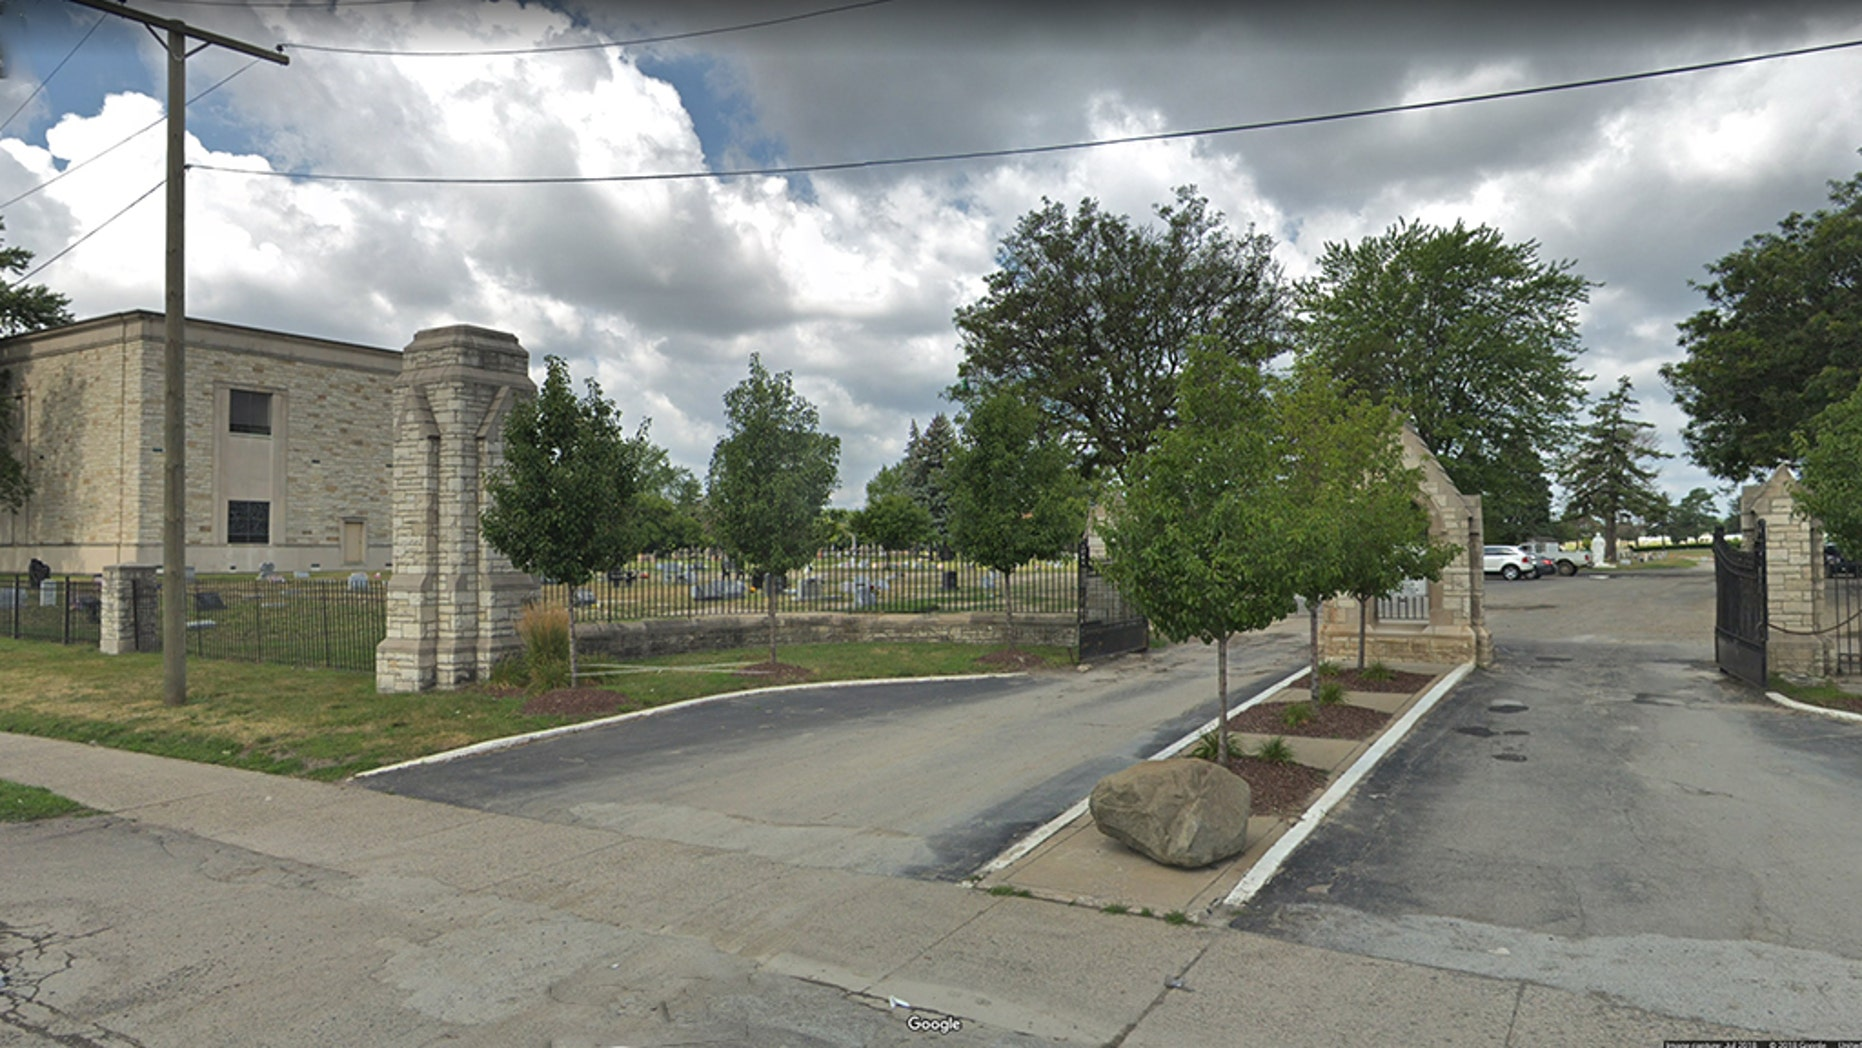 Authorities in Michigan revealed Thursday that they uncovered several fetuses' remains at two separate funeral homes whose documentation exhibited discrepancies.